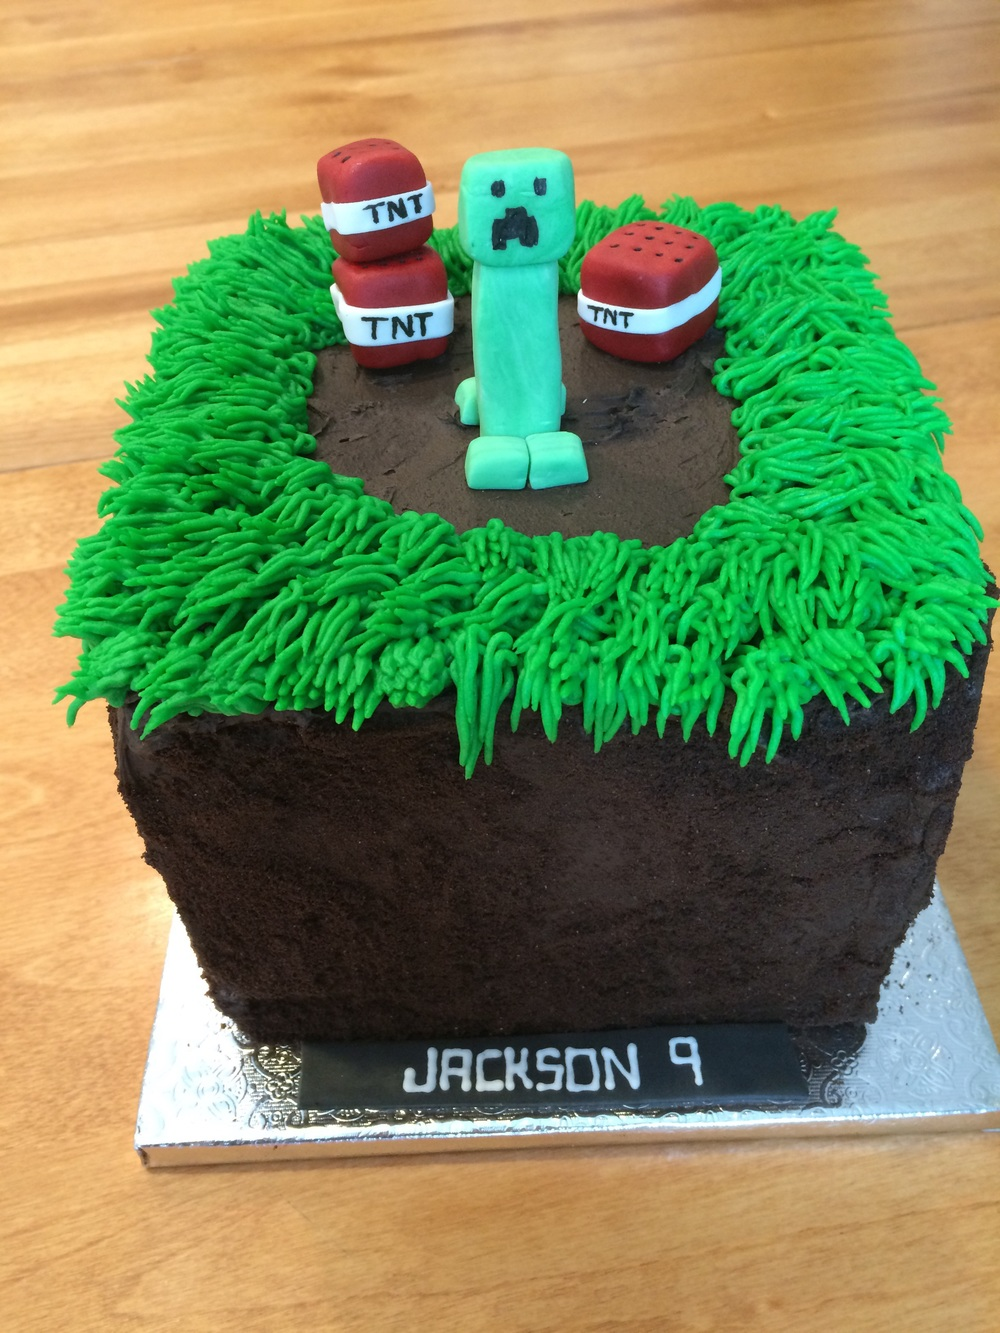 Minecraft birthday cake, chocolate cake covered in black cocoa buttercream and Oreo crumbs with Minecraft accents